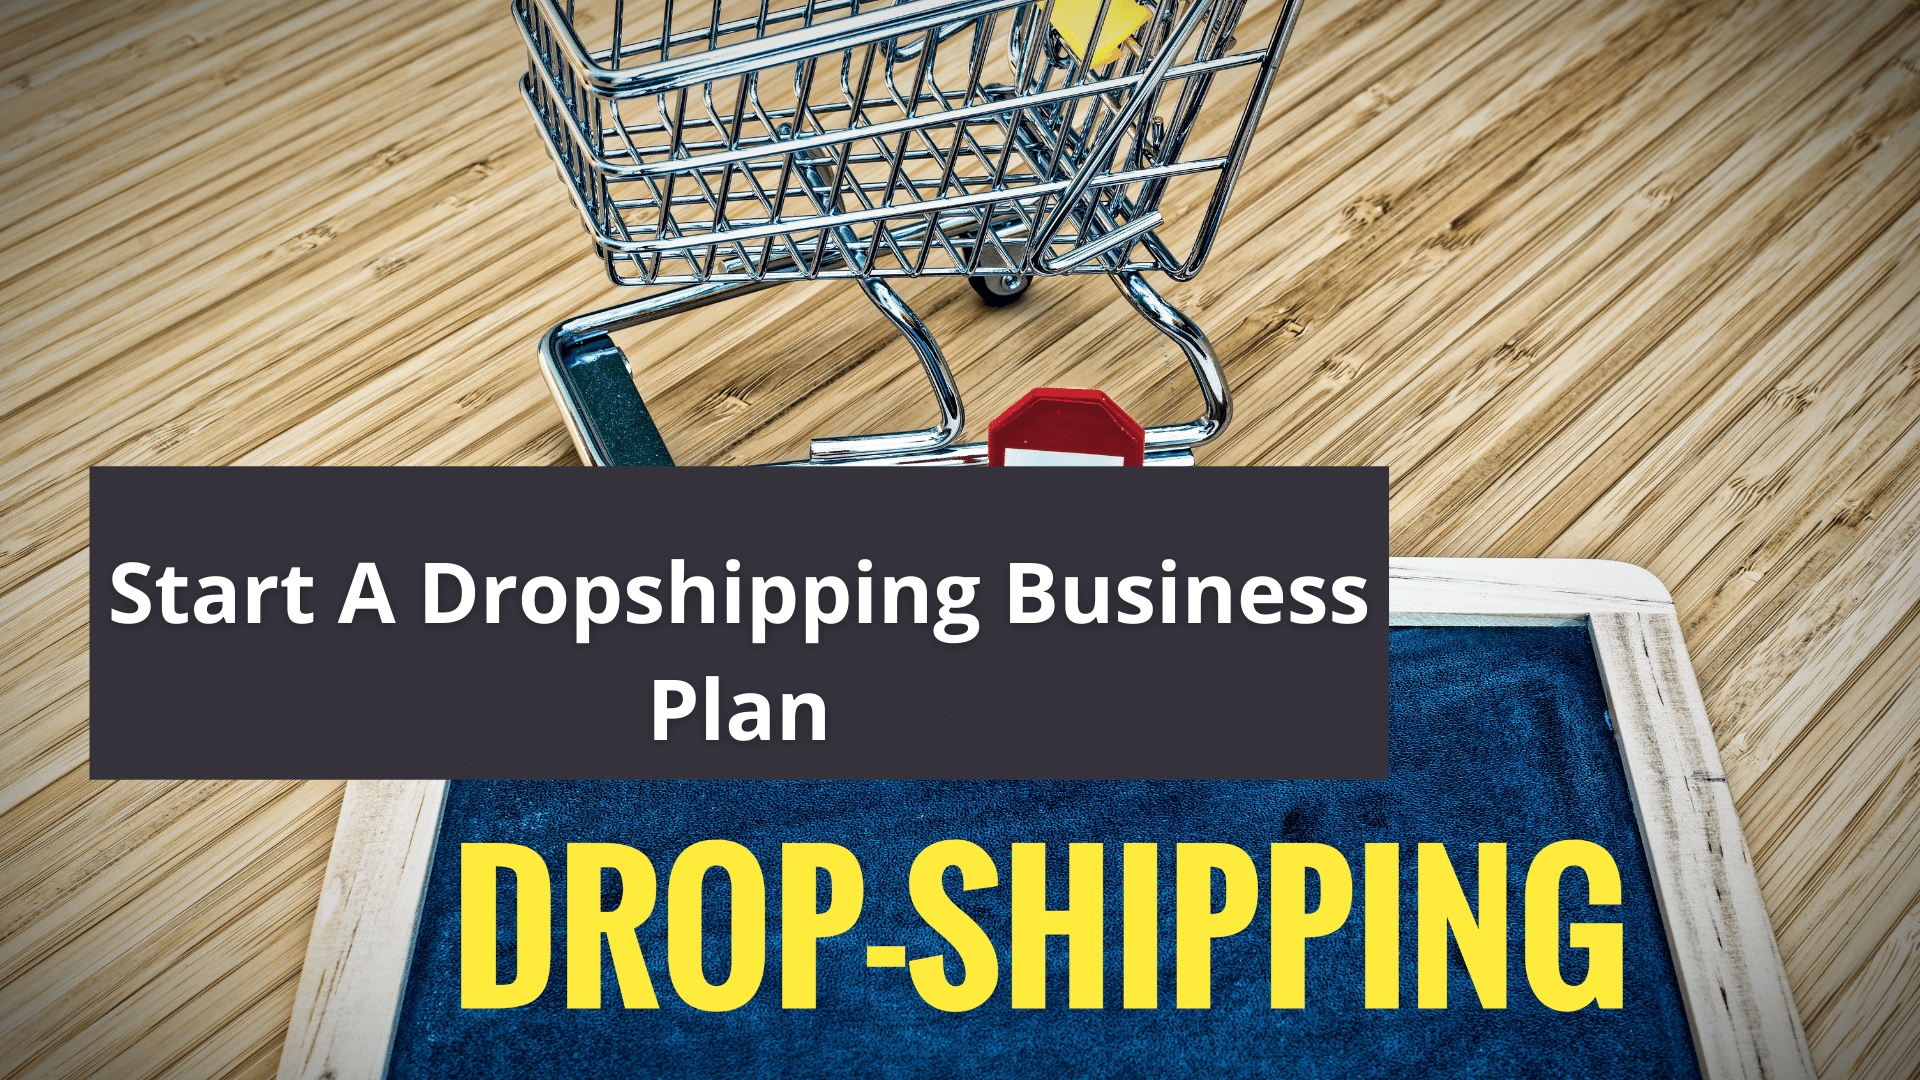 How To Start A Drop shipping Business Plan - The First Step For A Successful Online Business 41